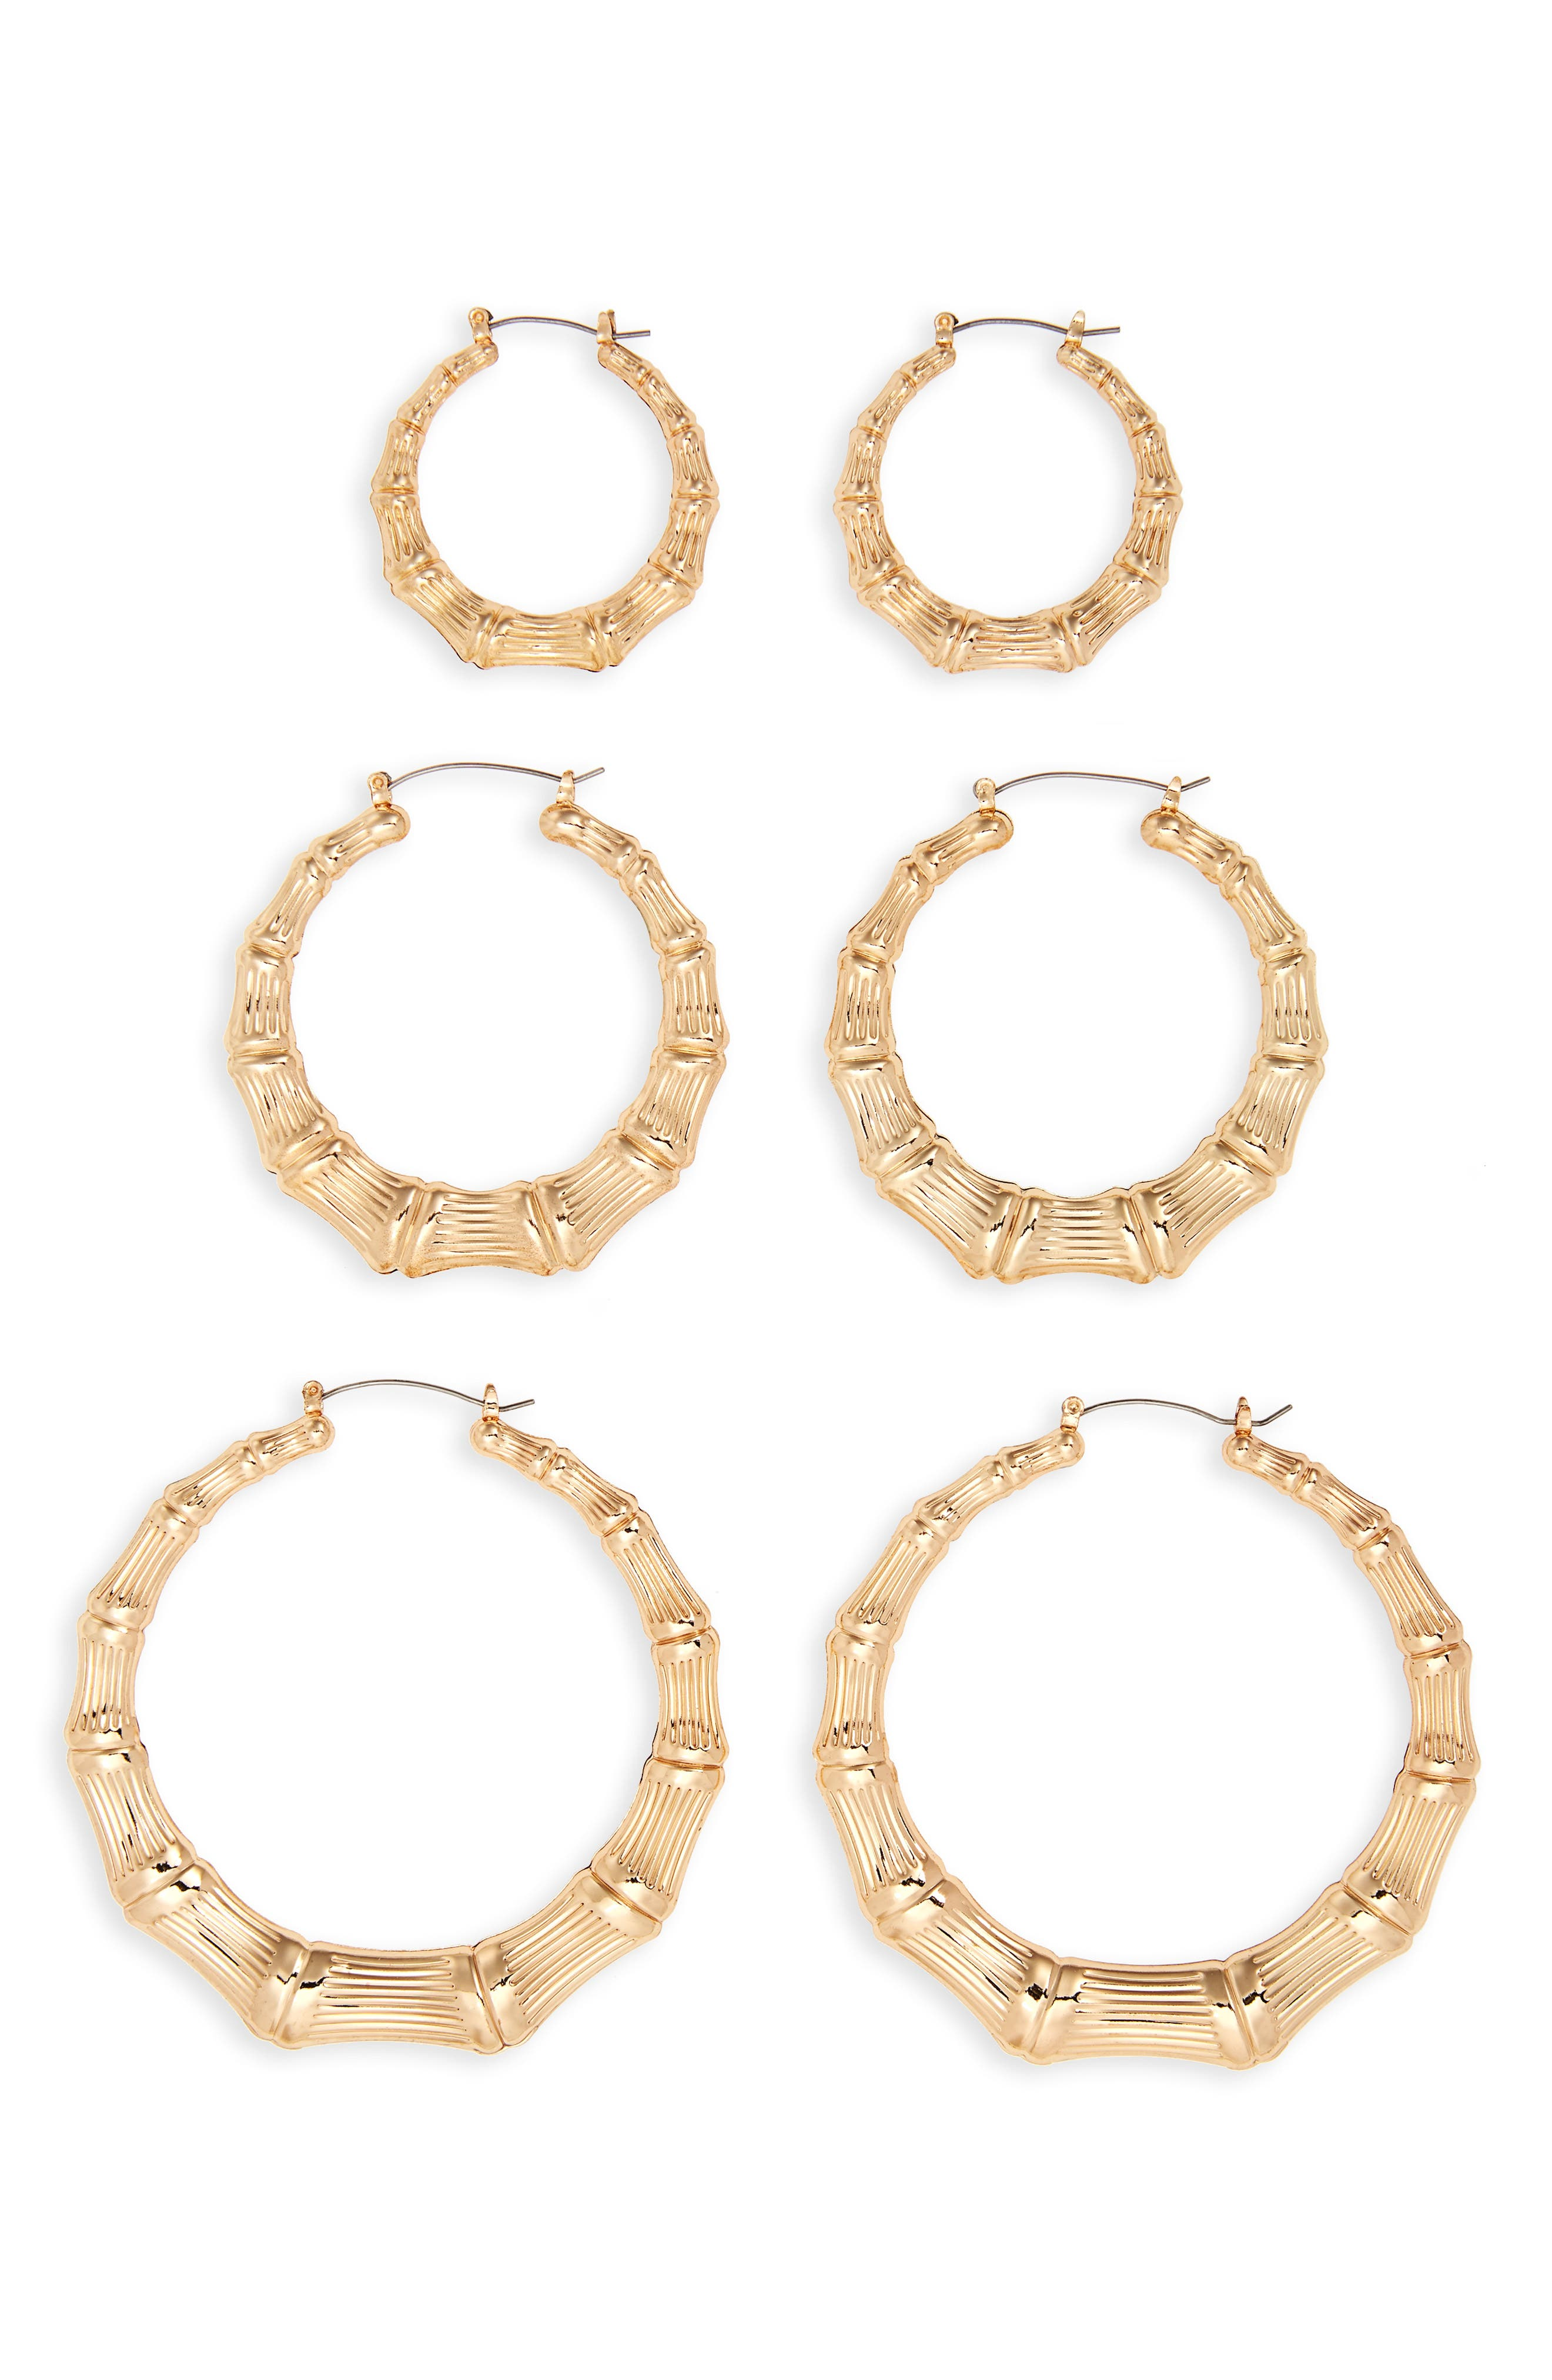 3-Pack Bamboo Hoop Earrings,                         Main,                         color, Gold